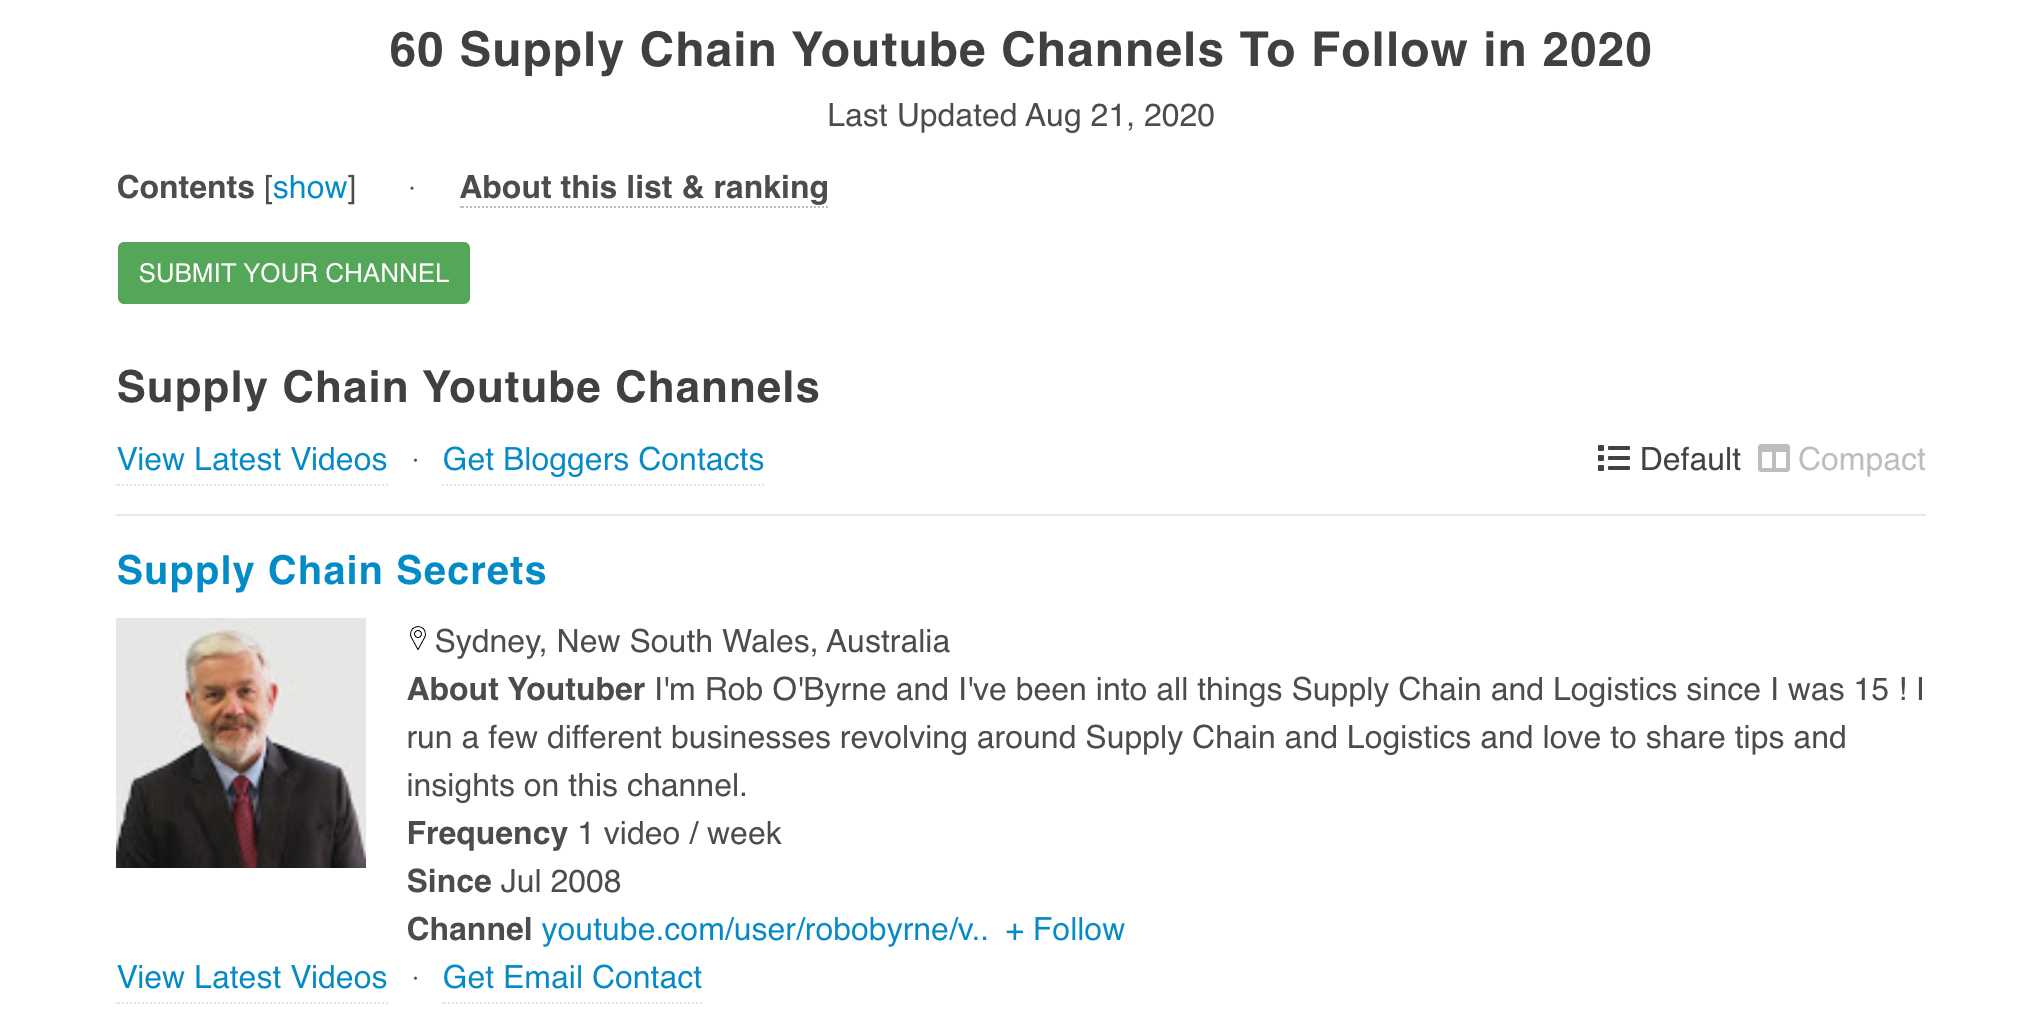 60 Supply Chain Youtube Channels To Follow in 2020